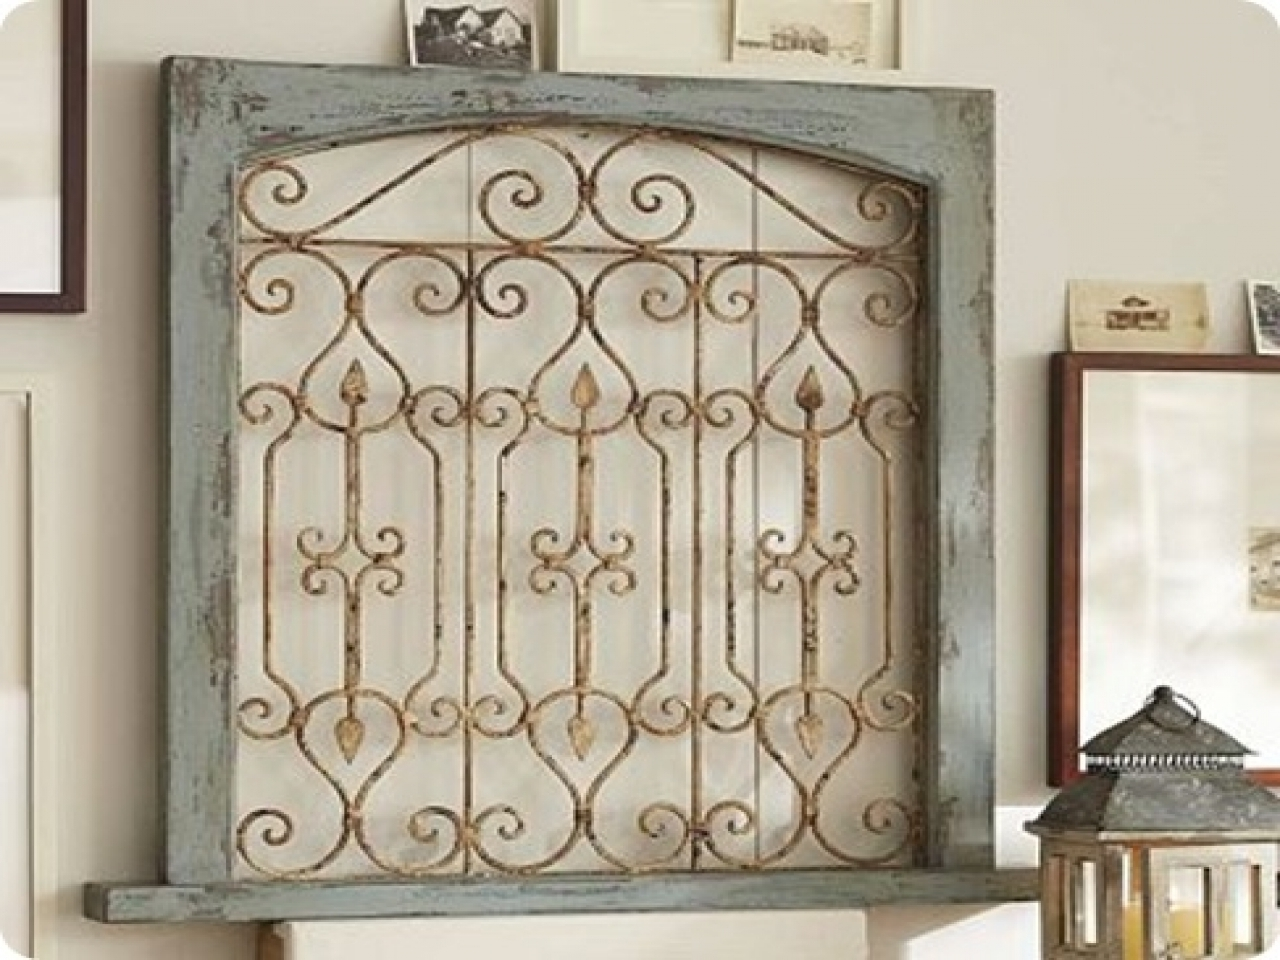 Wall Plate Design Ideas For Architectural Wall Accents (View 5 of 15)